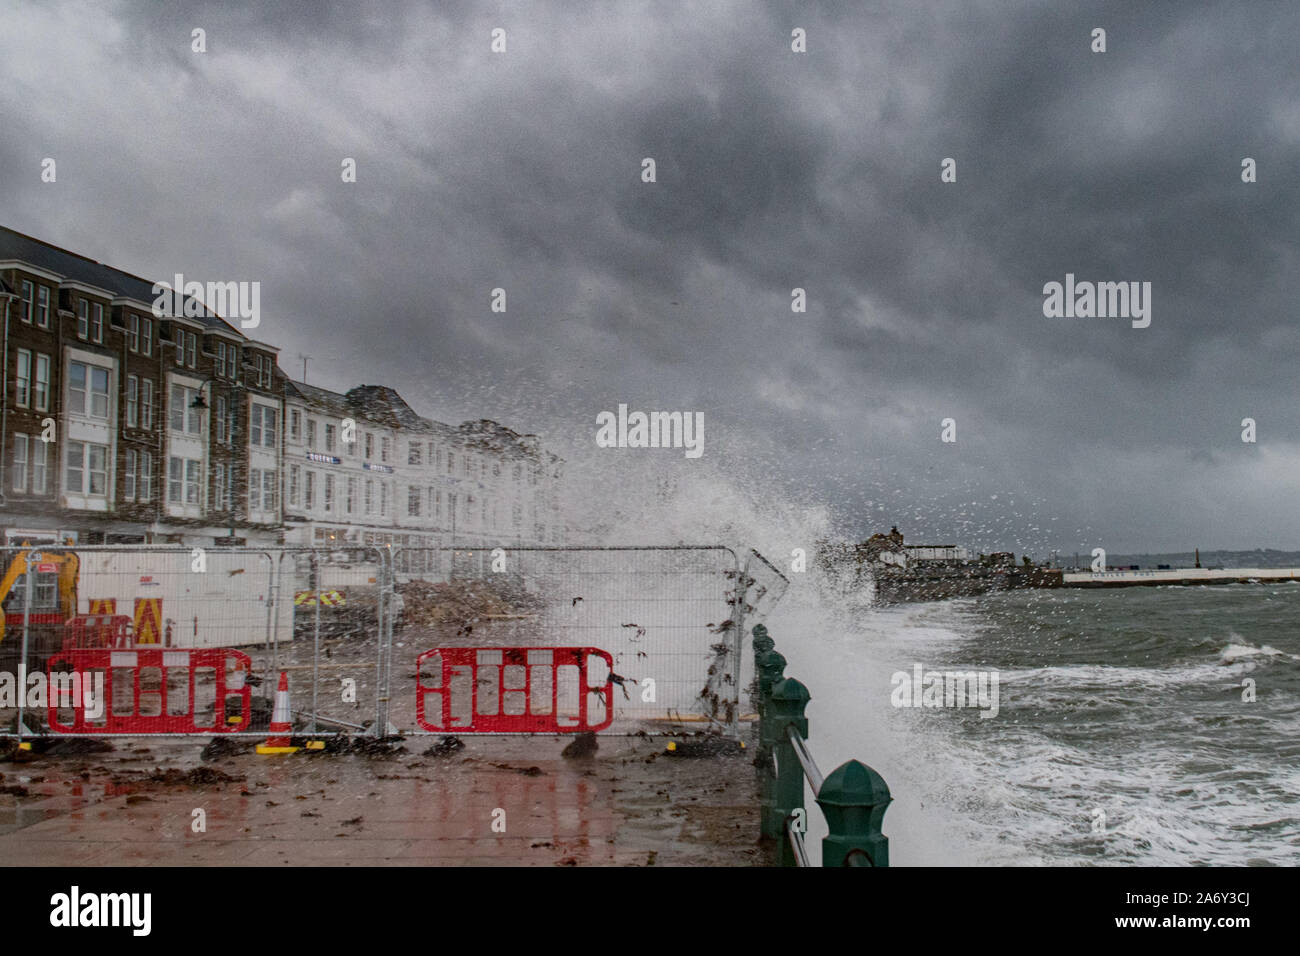 Penzance, Cornwall, UK. 29th October 2019. UK Weather.  Strong wind, big waves and heavy rain batter the sea front at Penzance this morning. Credit Simon Maycock / Alamy Live News. Stock Photo